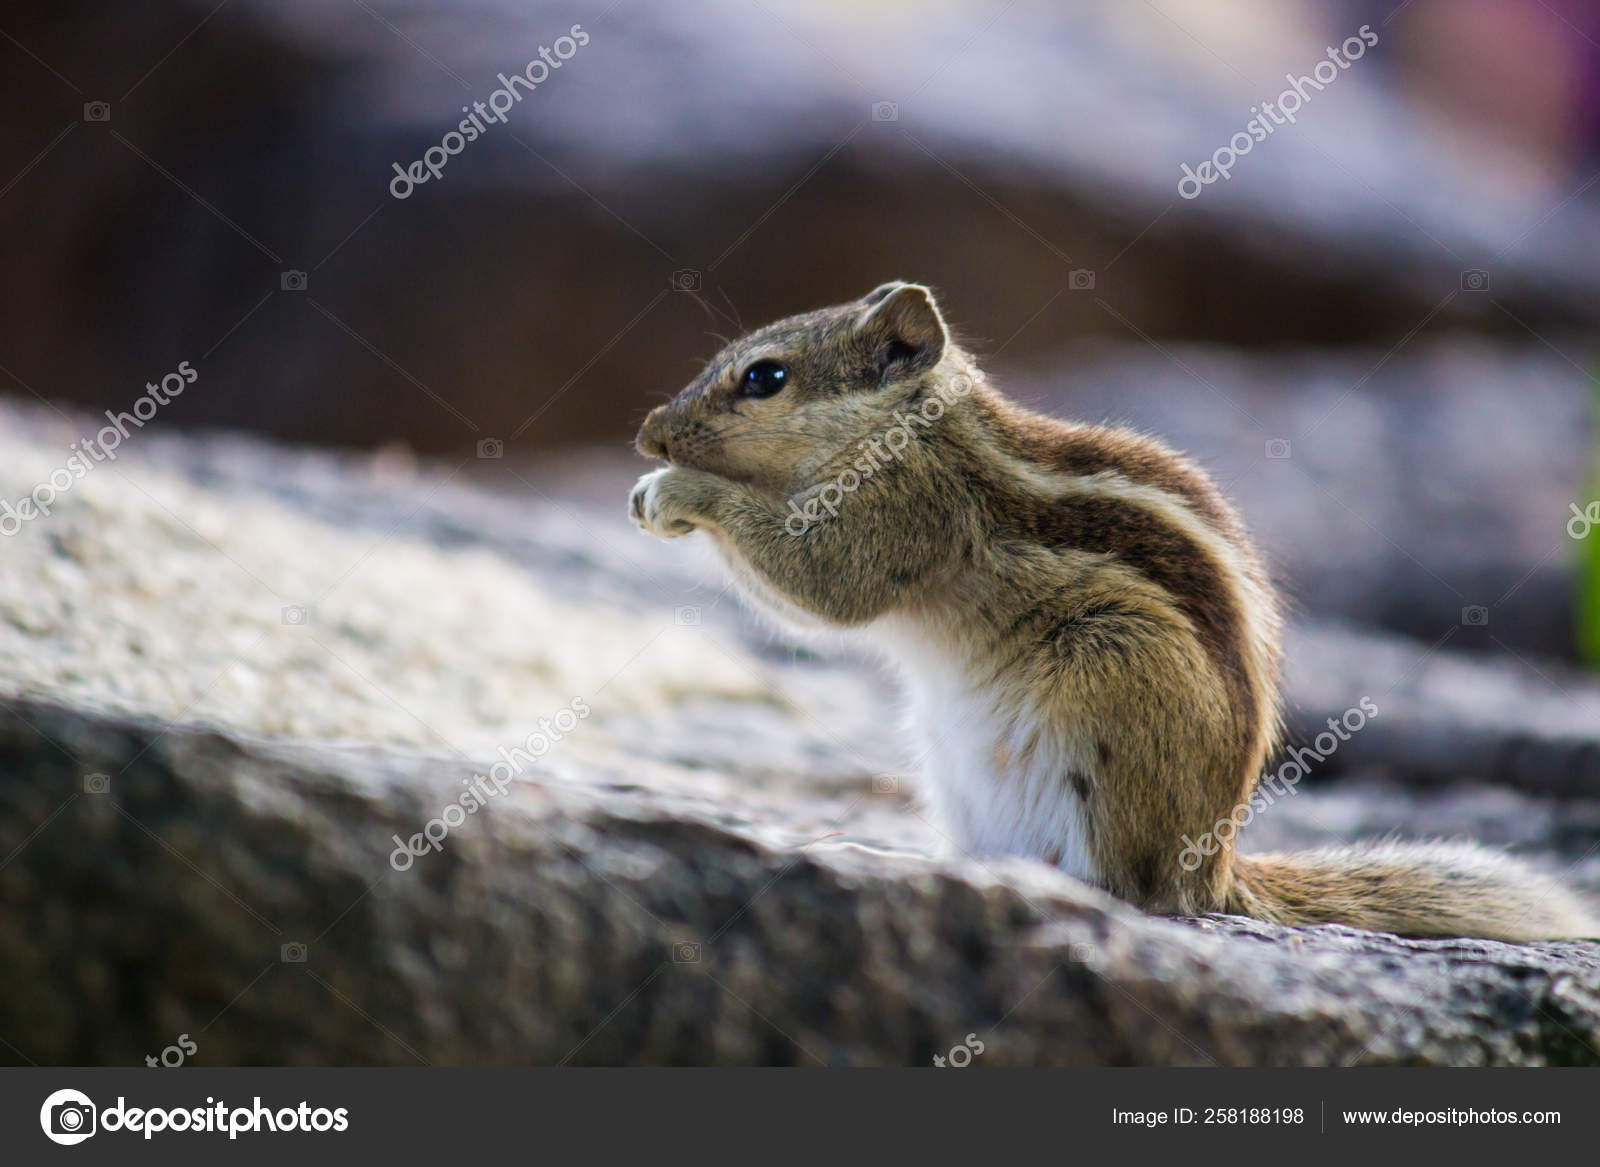 squirrels members family sciuridae